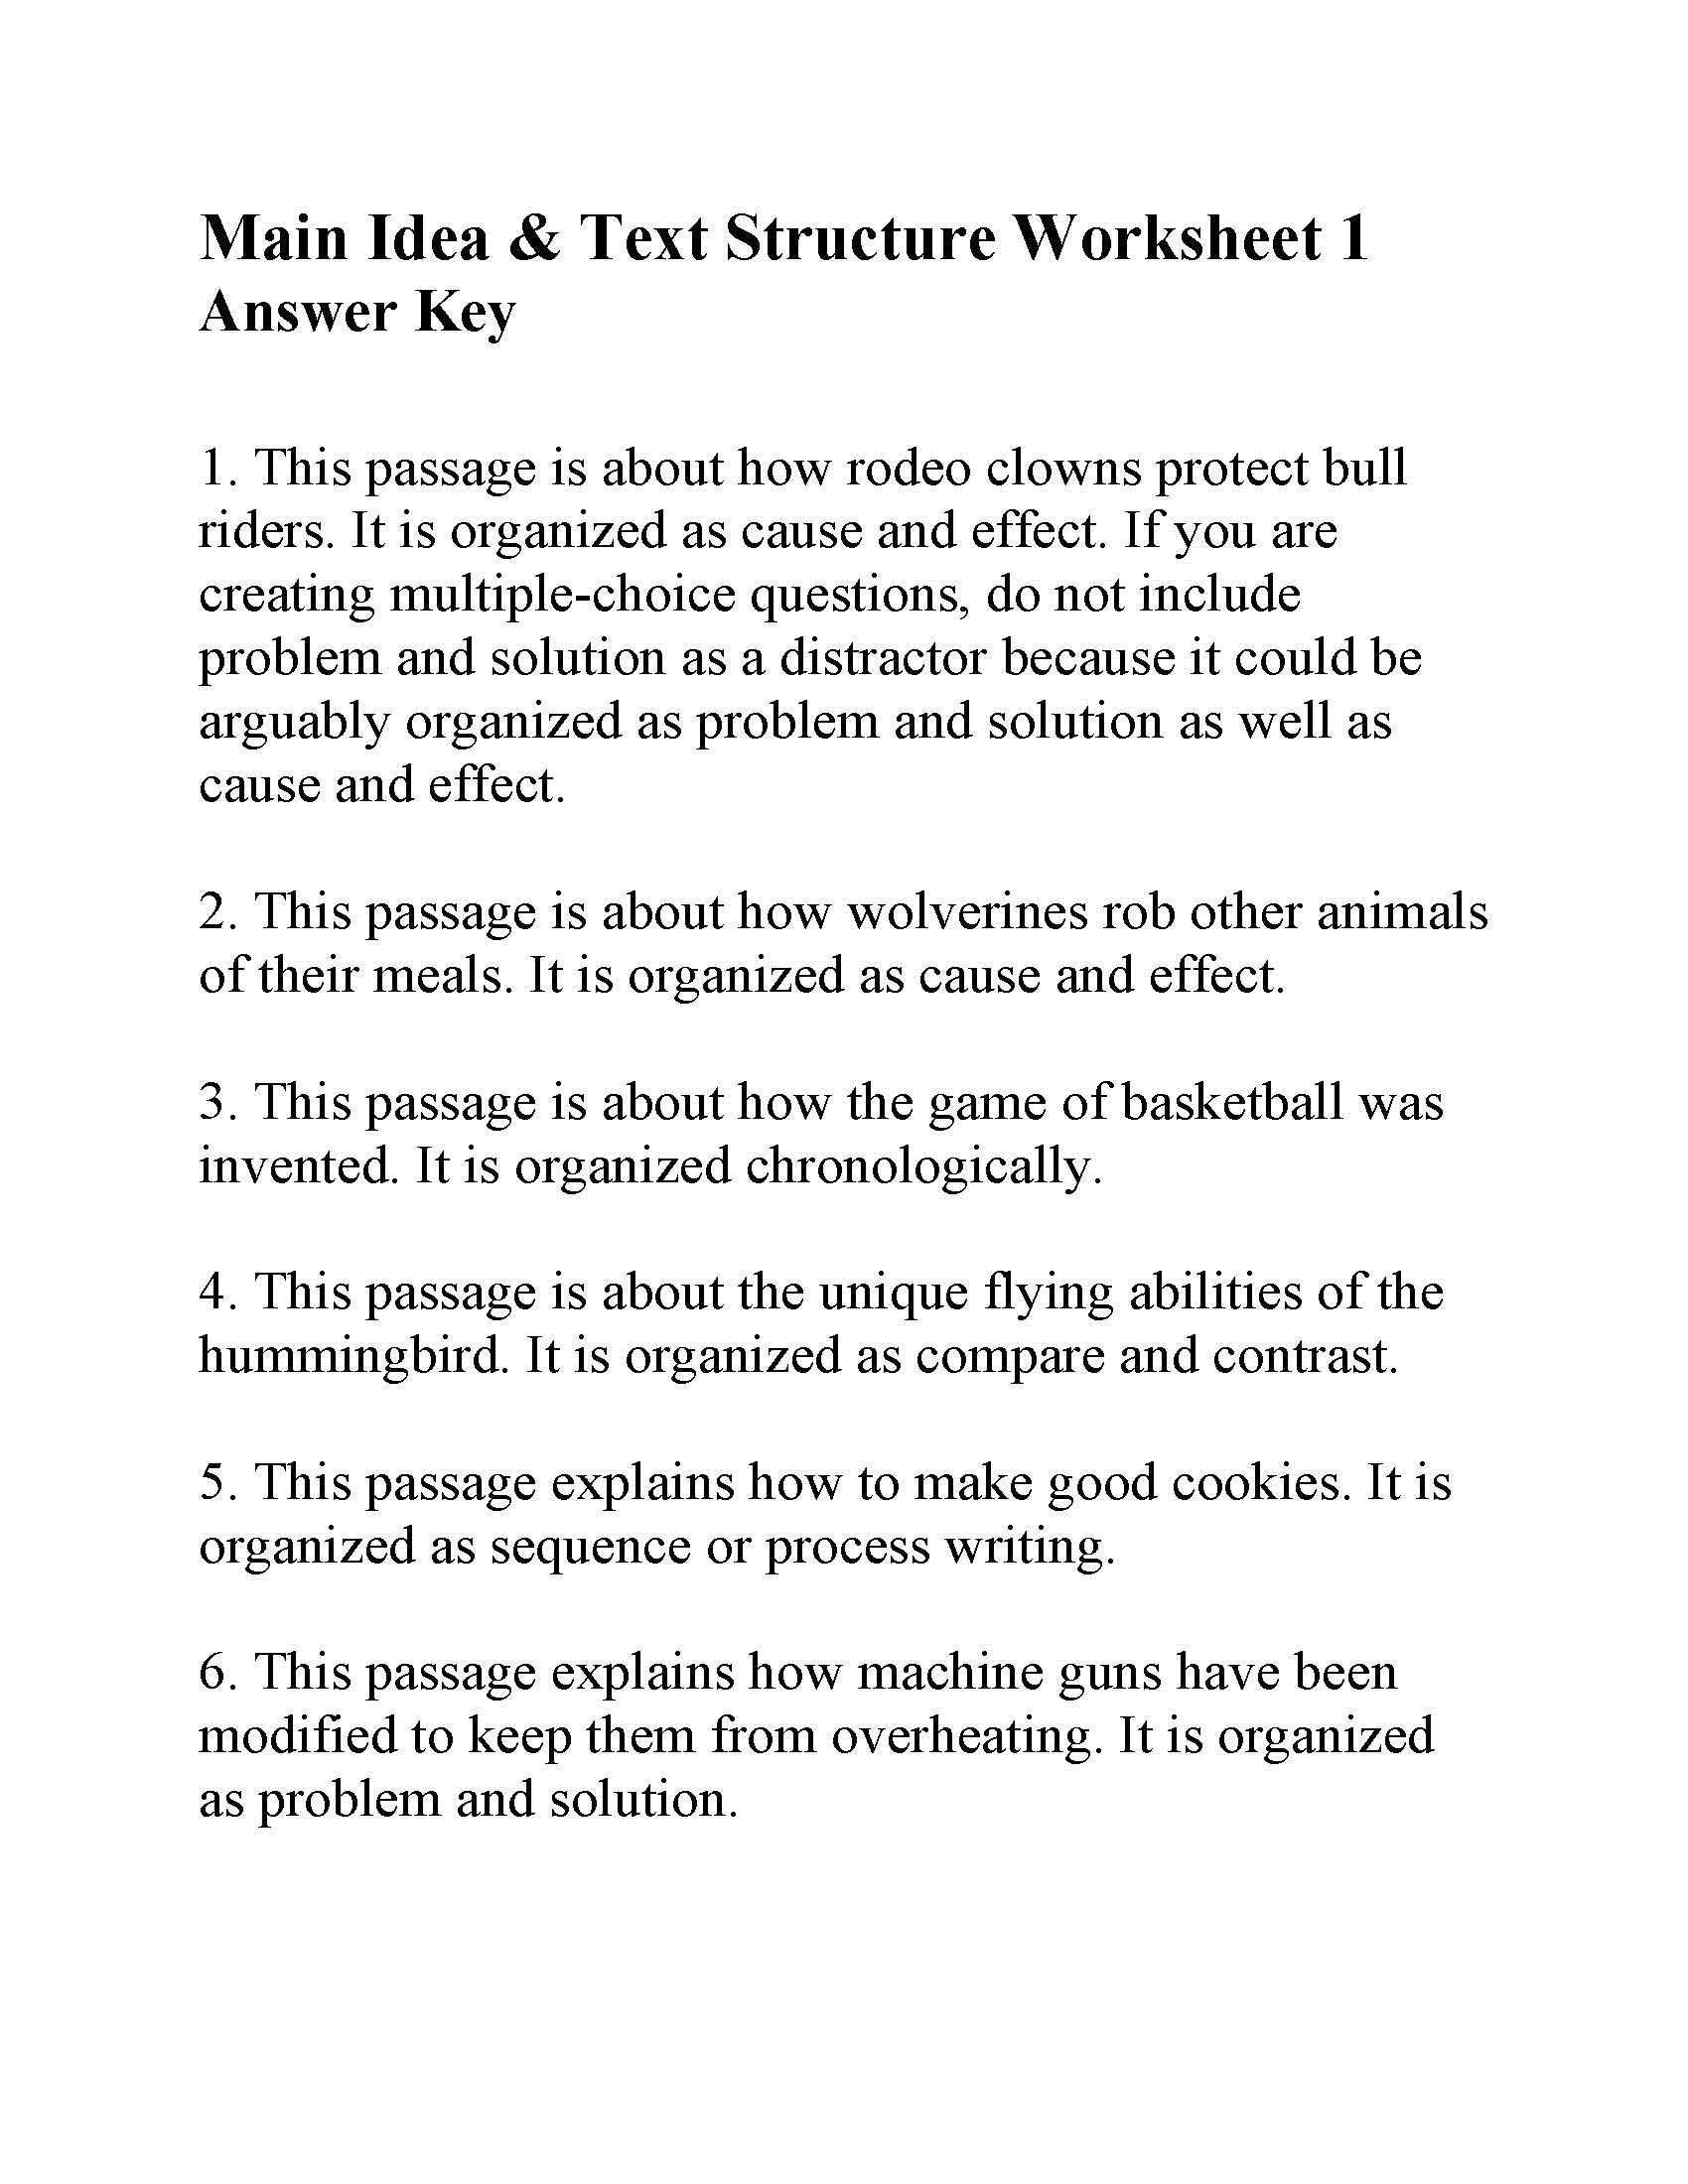 Text Structure Worksheets 4th Grade This is the Answer Key for the Main Idea and Text Structure